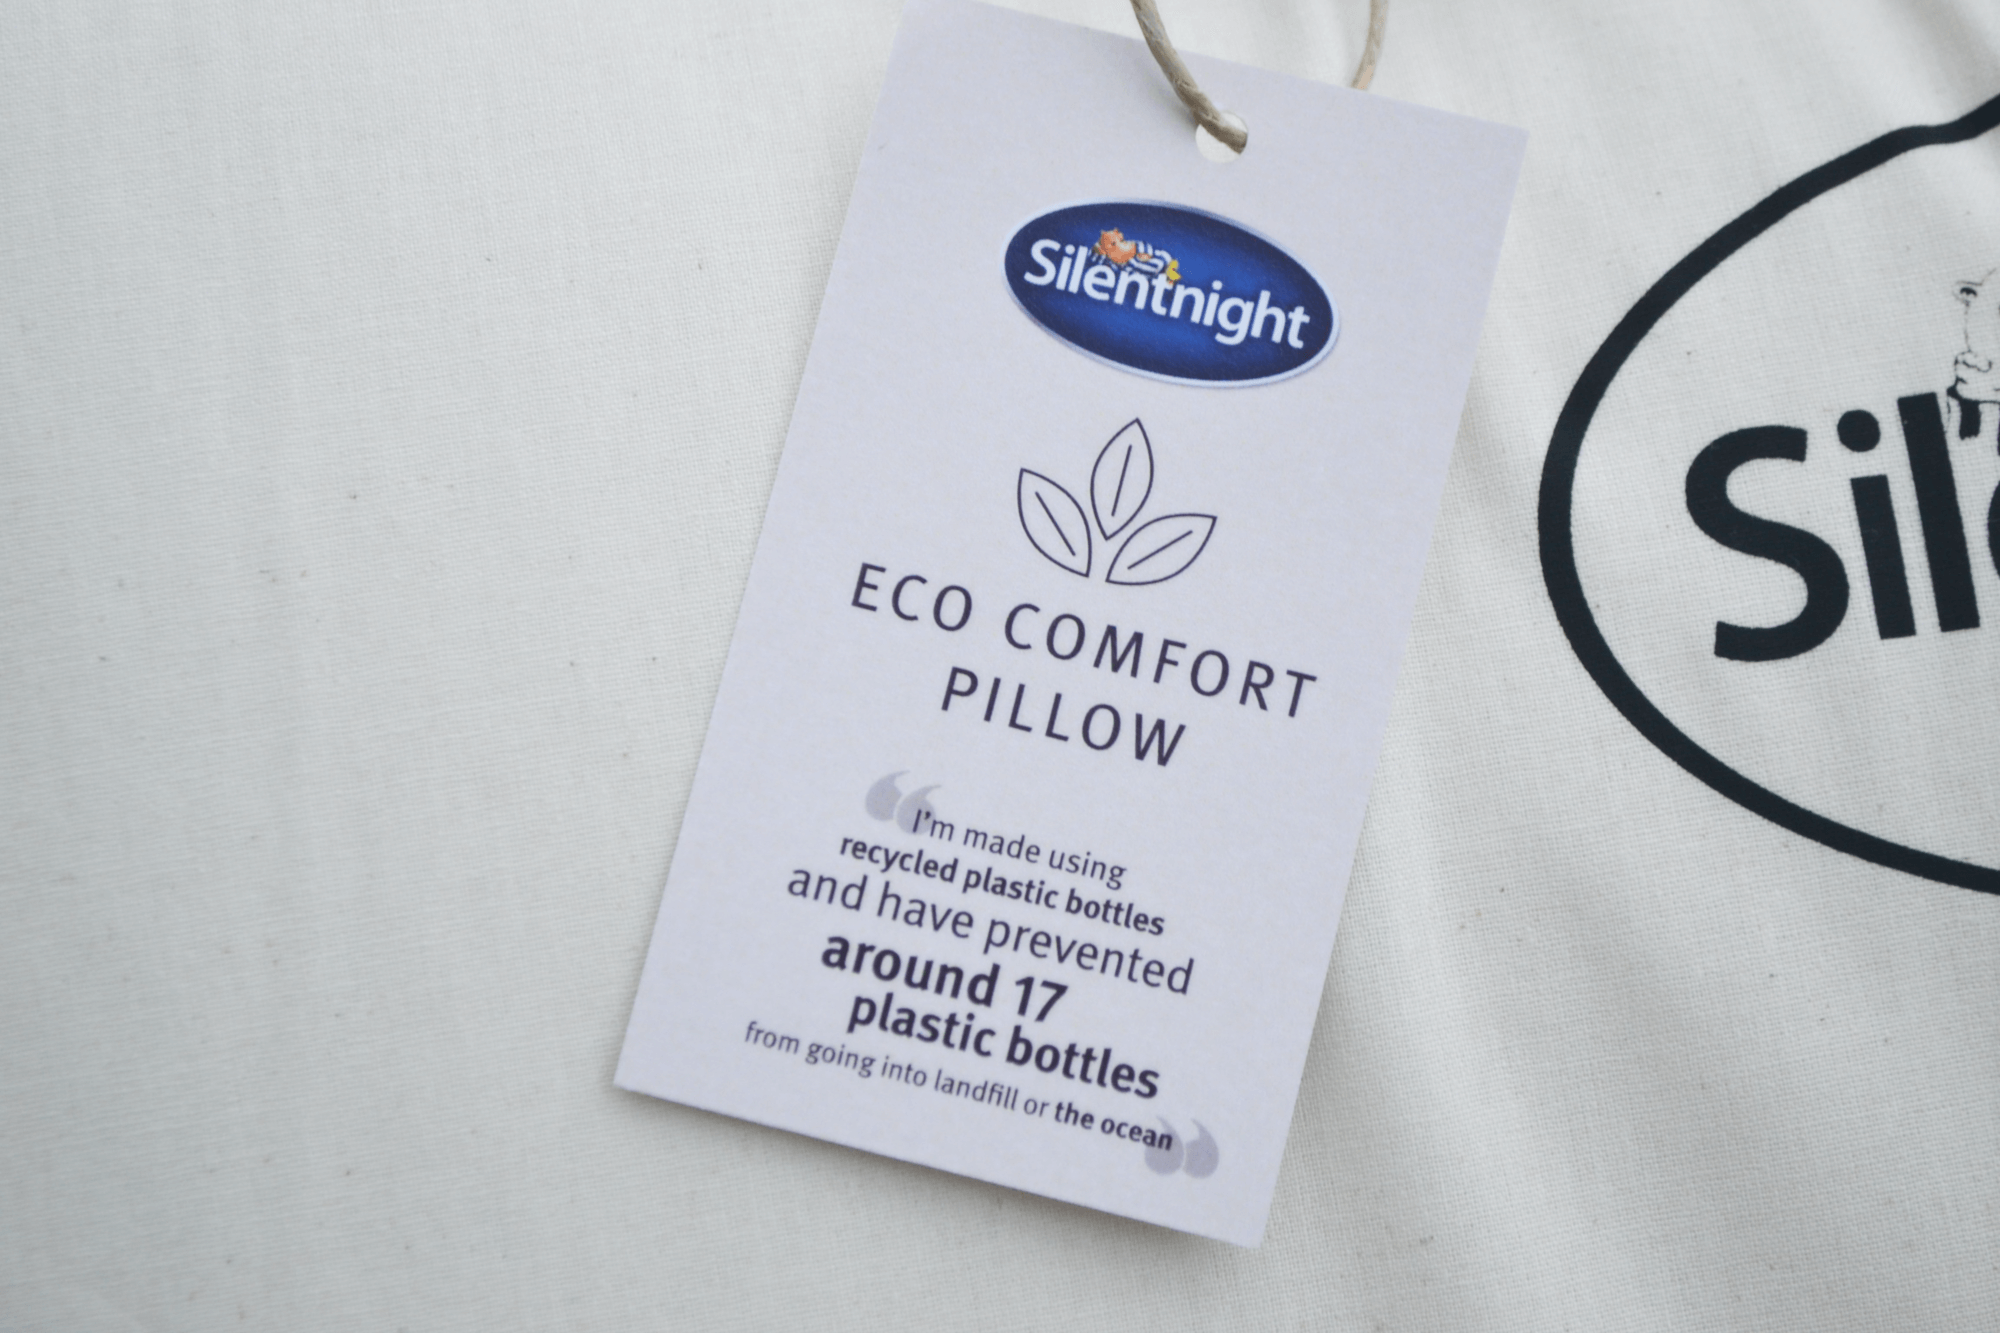 eco comfort pillows